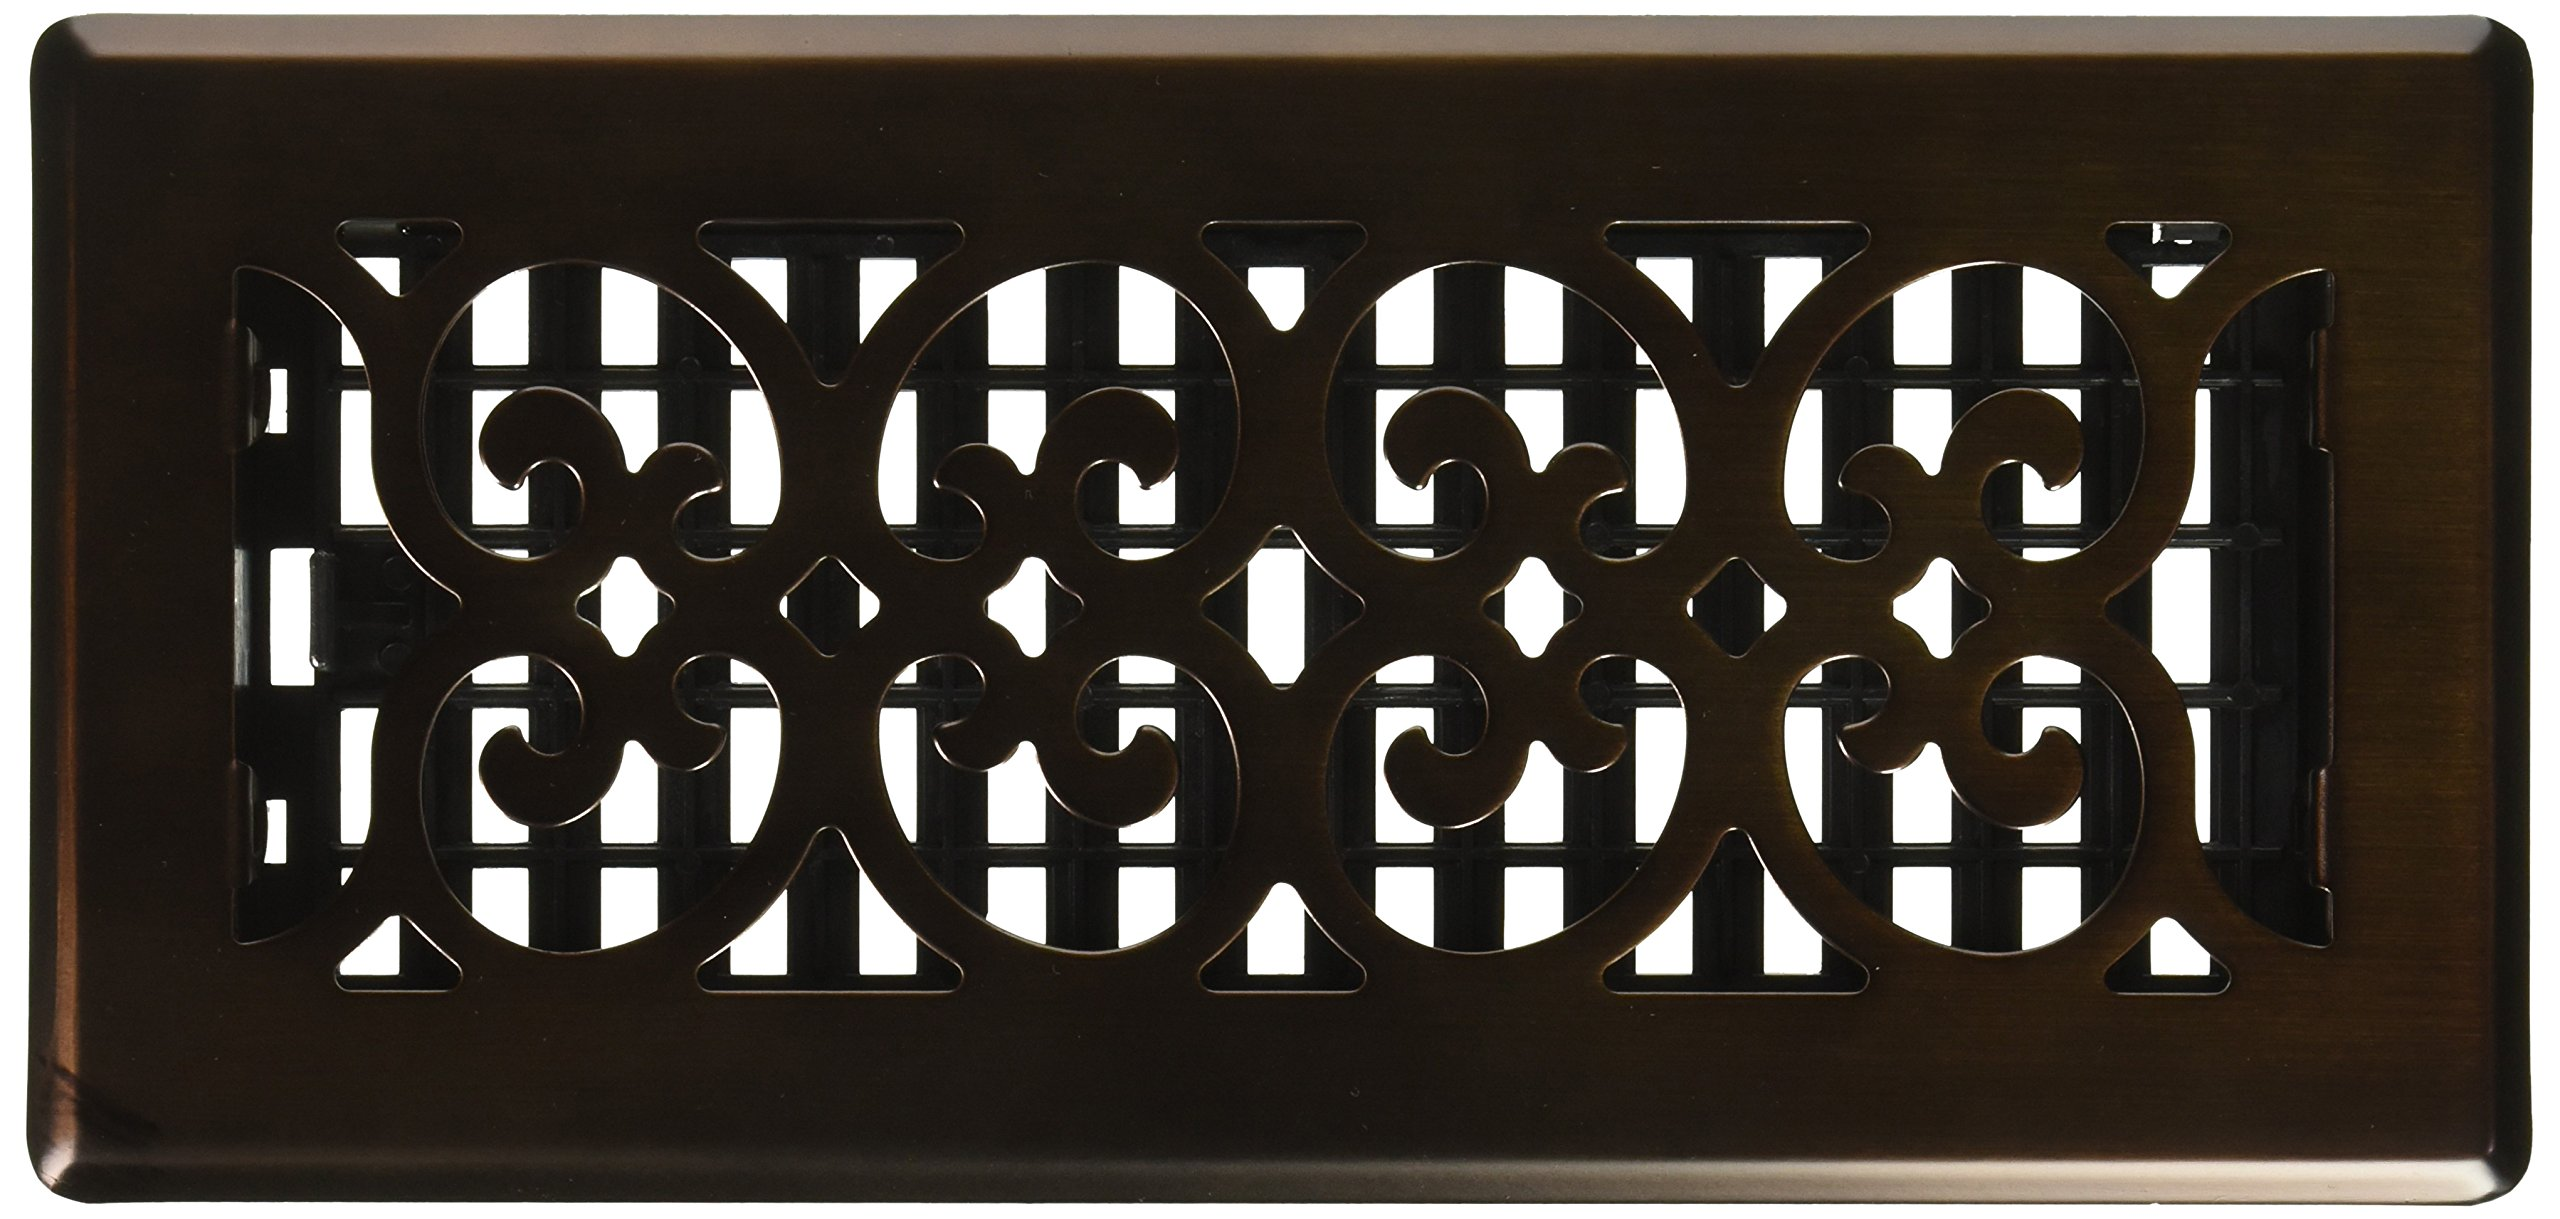 Decor Grates SPH410-RB Scroll Plated Register, 4-Inch by 10-Inch, Rubbed Bronze by Decor Grates